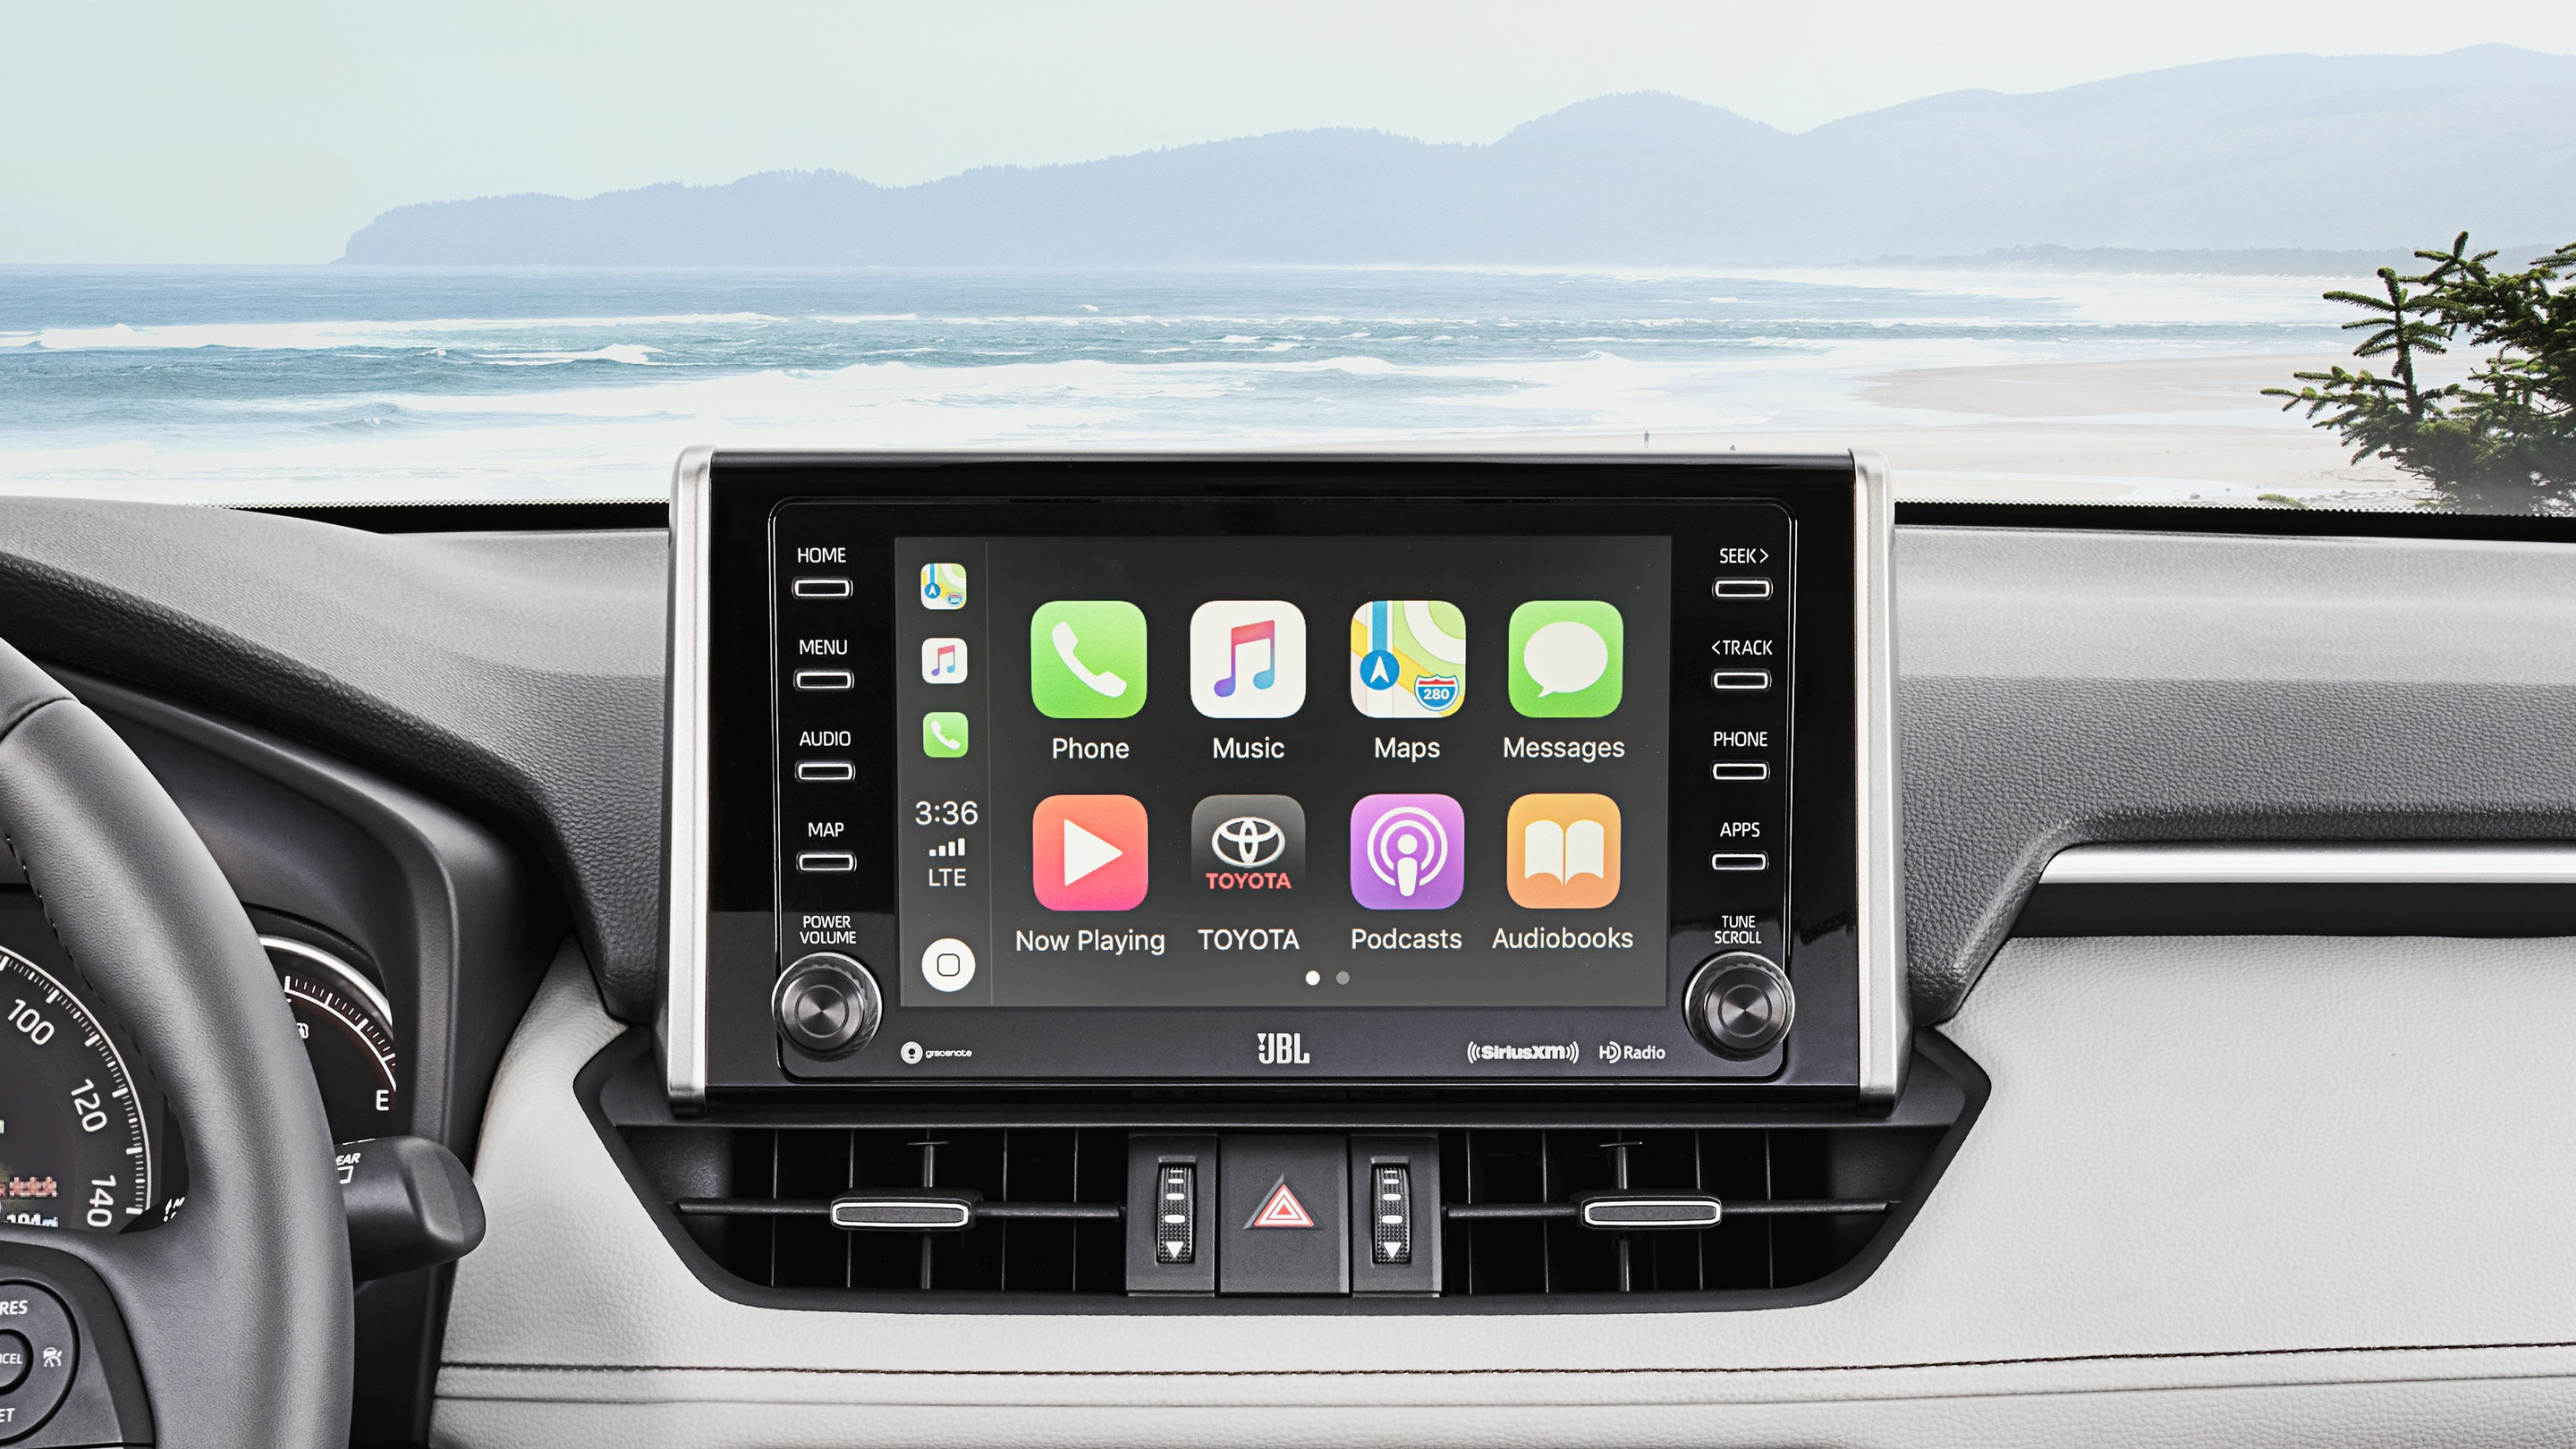 Touchscreen of the 2019 RAV4